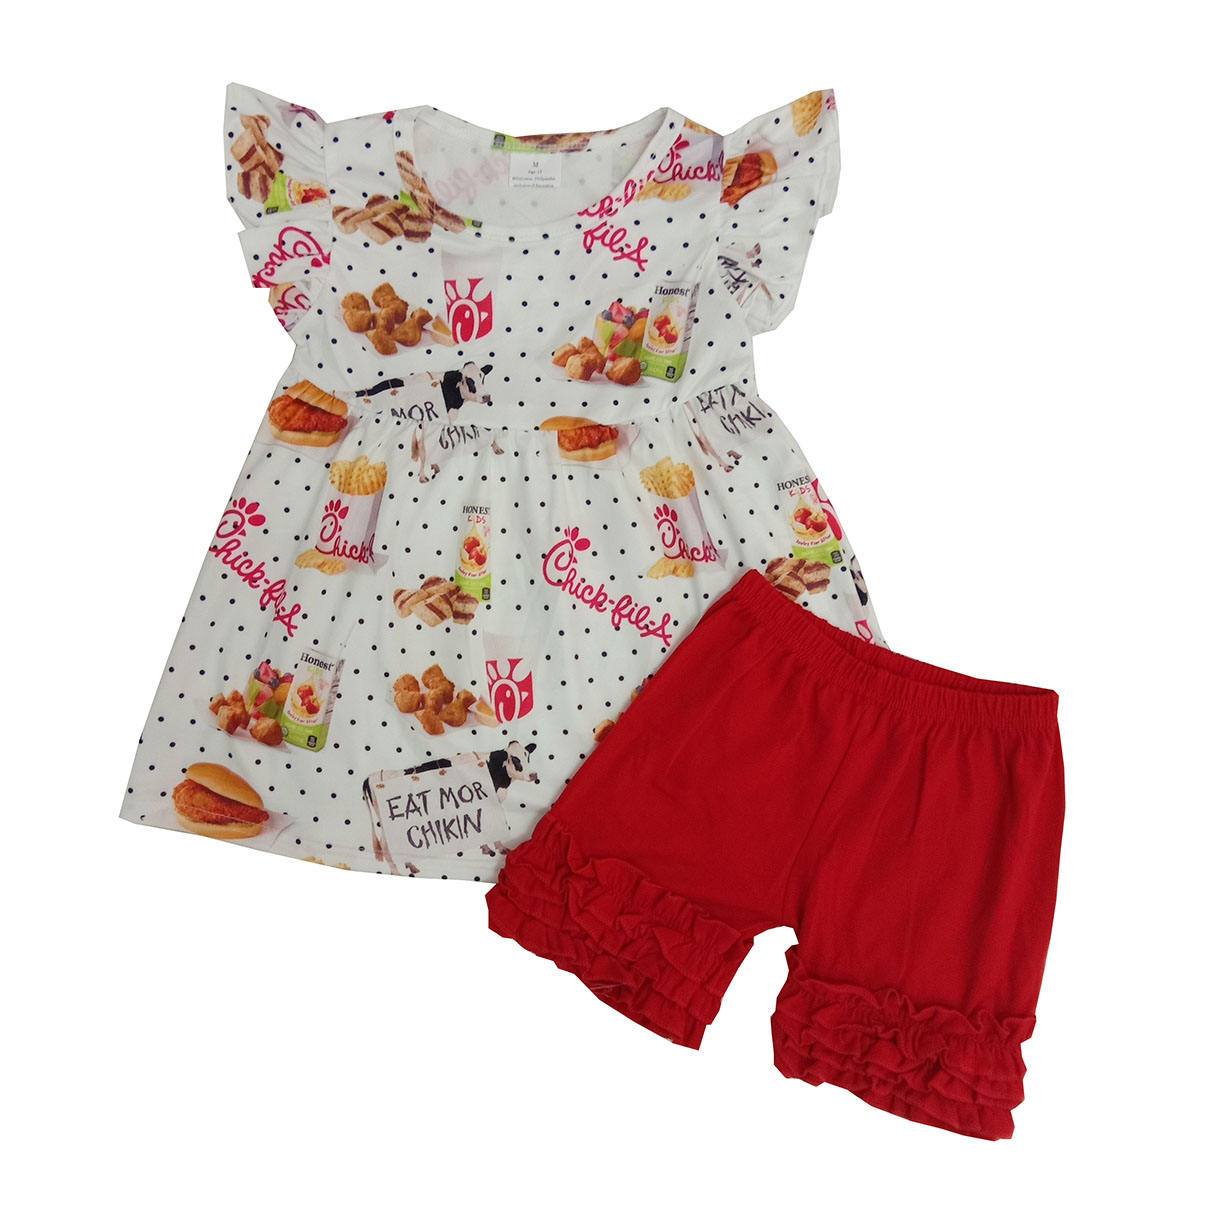 newborn baby girl clothing boutique junior casual dresses ruffle Tshirt top red shorts cute kids clothing plus size online